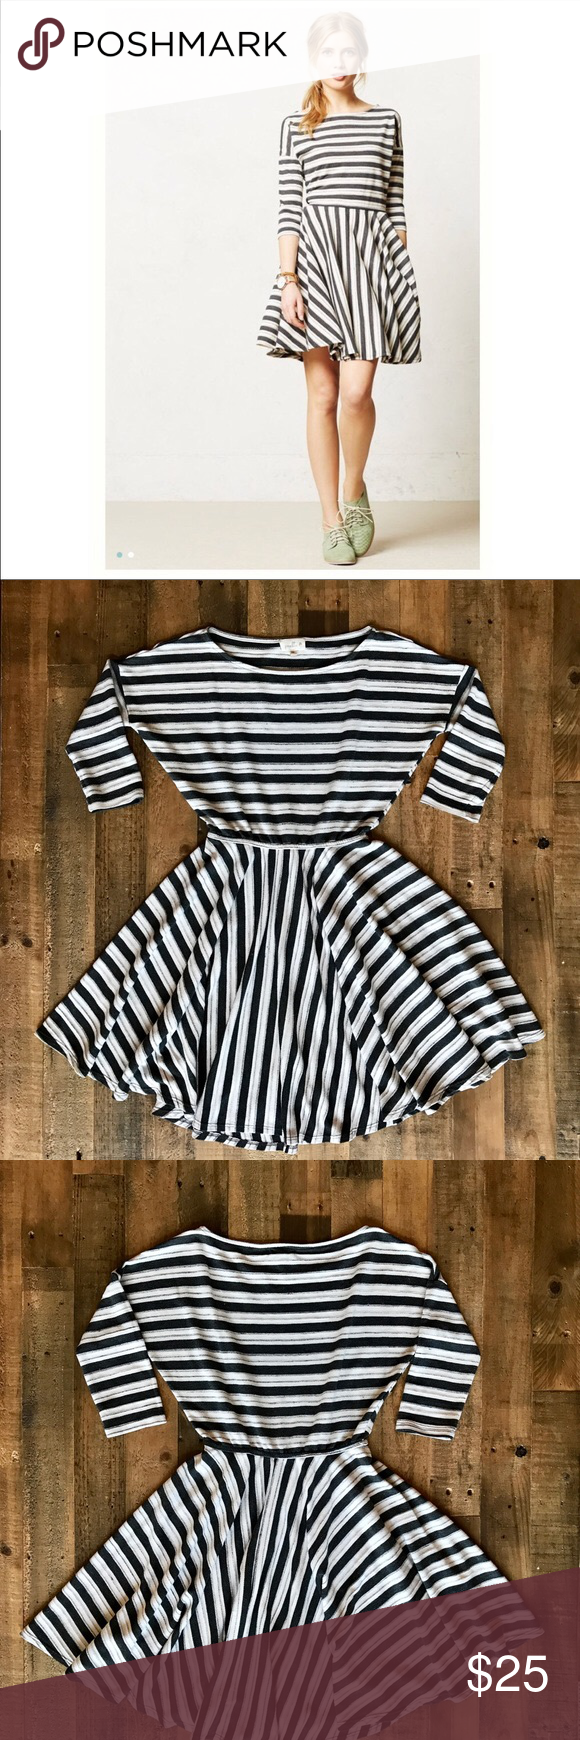 d19df3903f254 Anthropologie Striped Puella Midday Dress Size XS Weekends call for cozy,  throw-on-